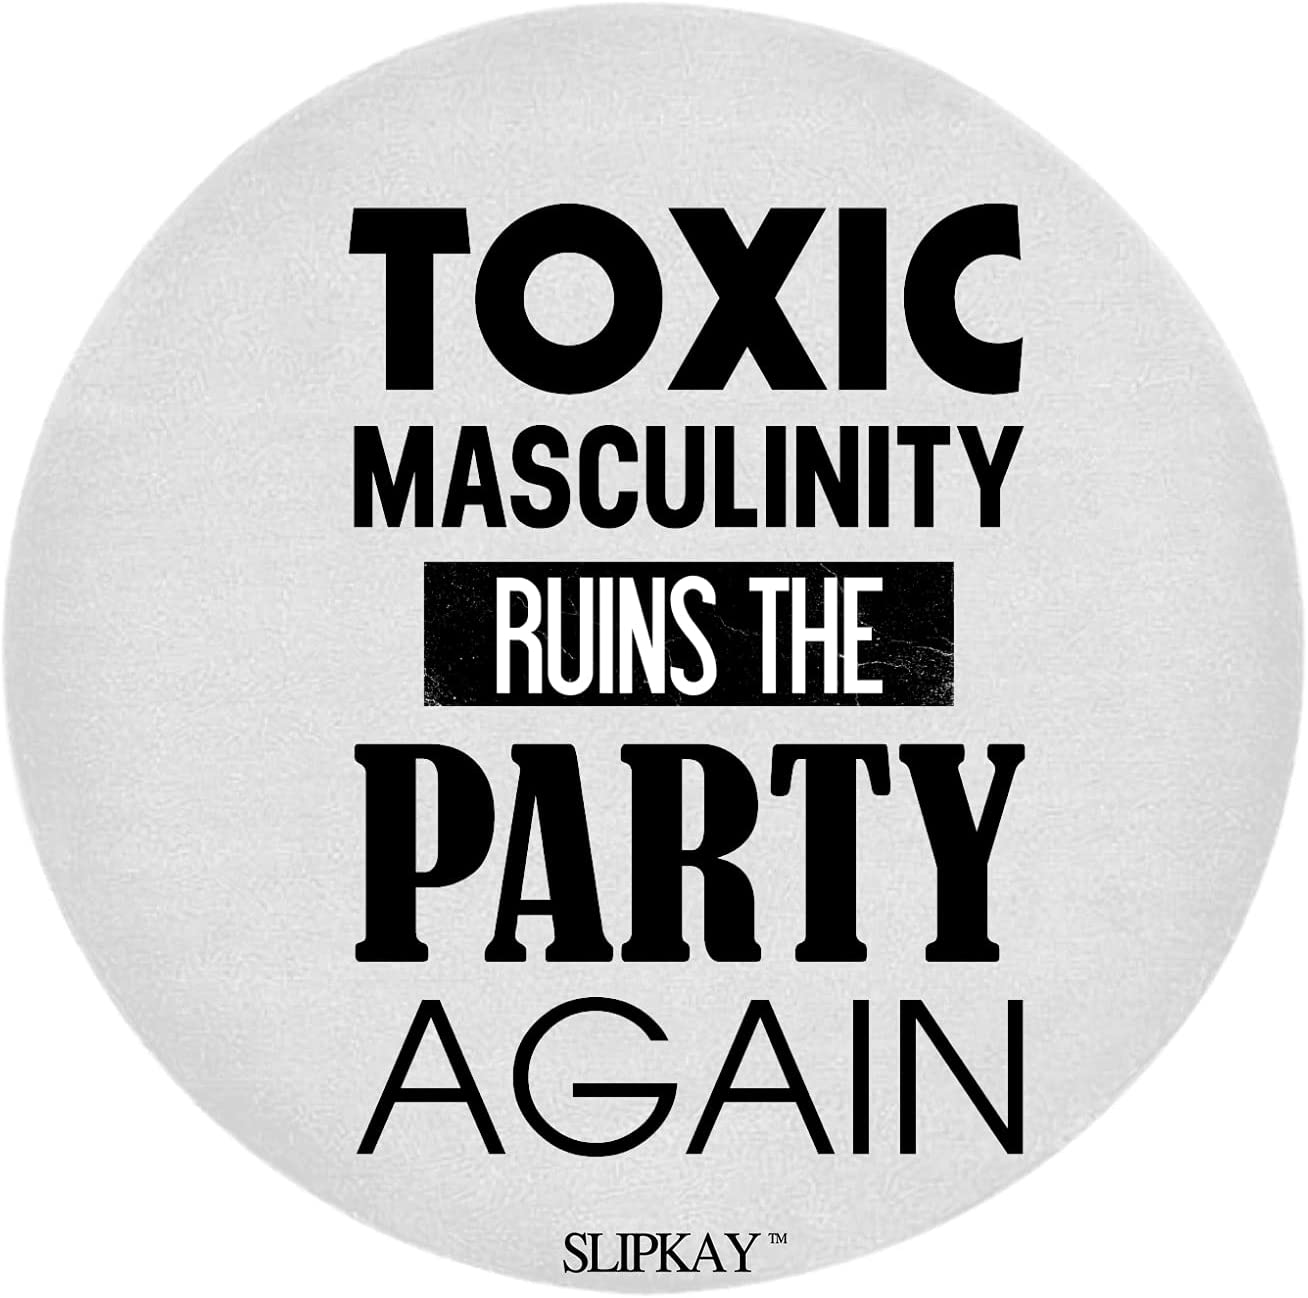 Toxic Masculinity Ruins The Round cheap Rug Trust Party Again